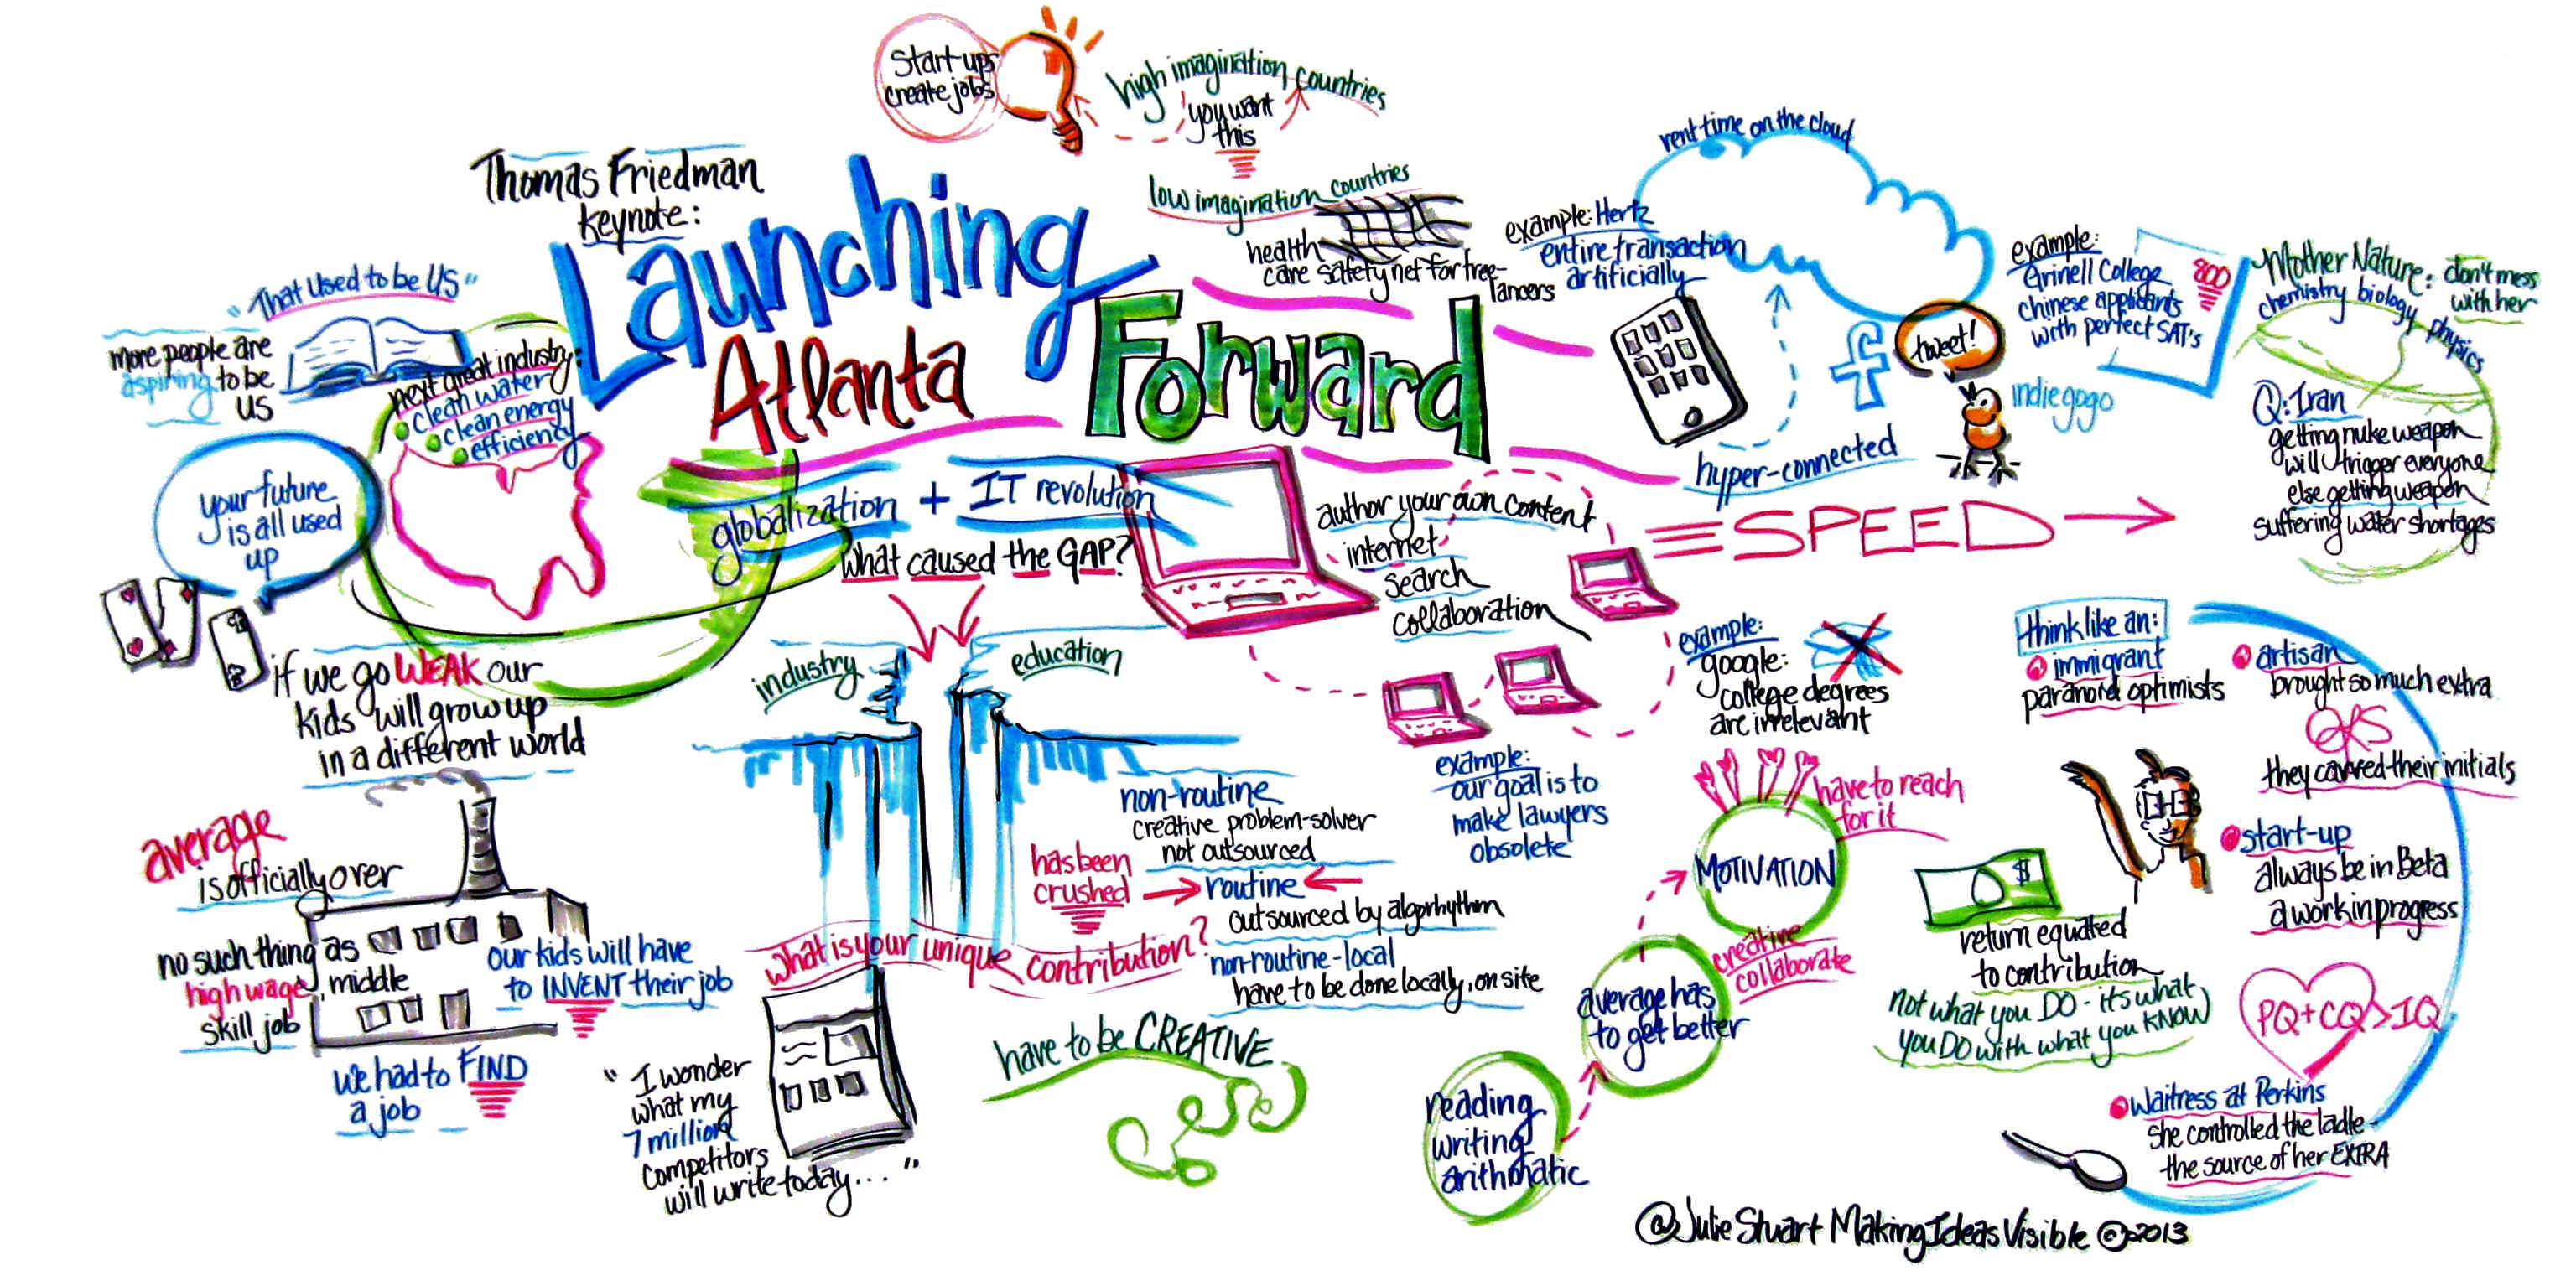 Launching Atlanta forward